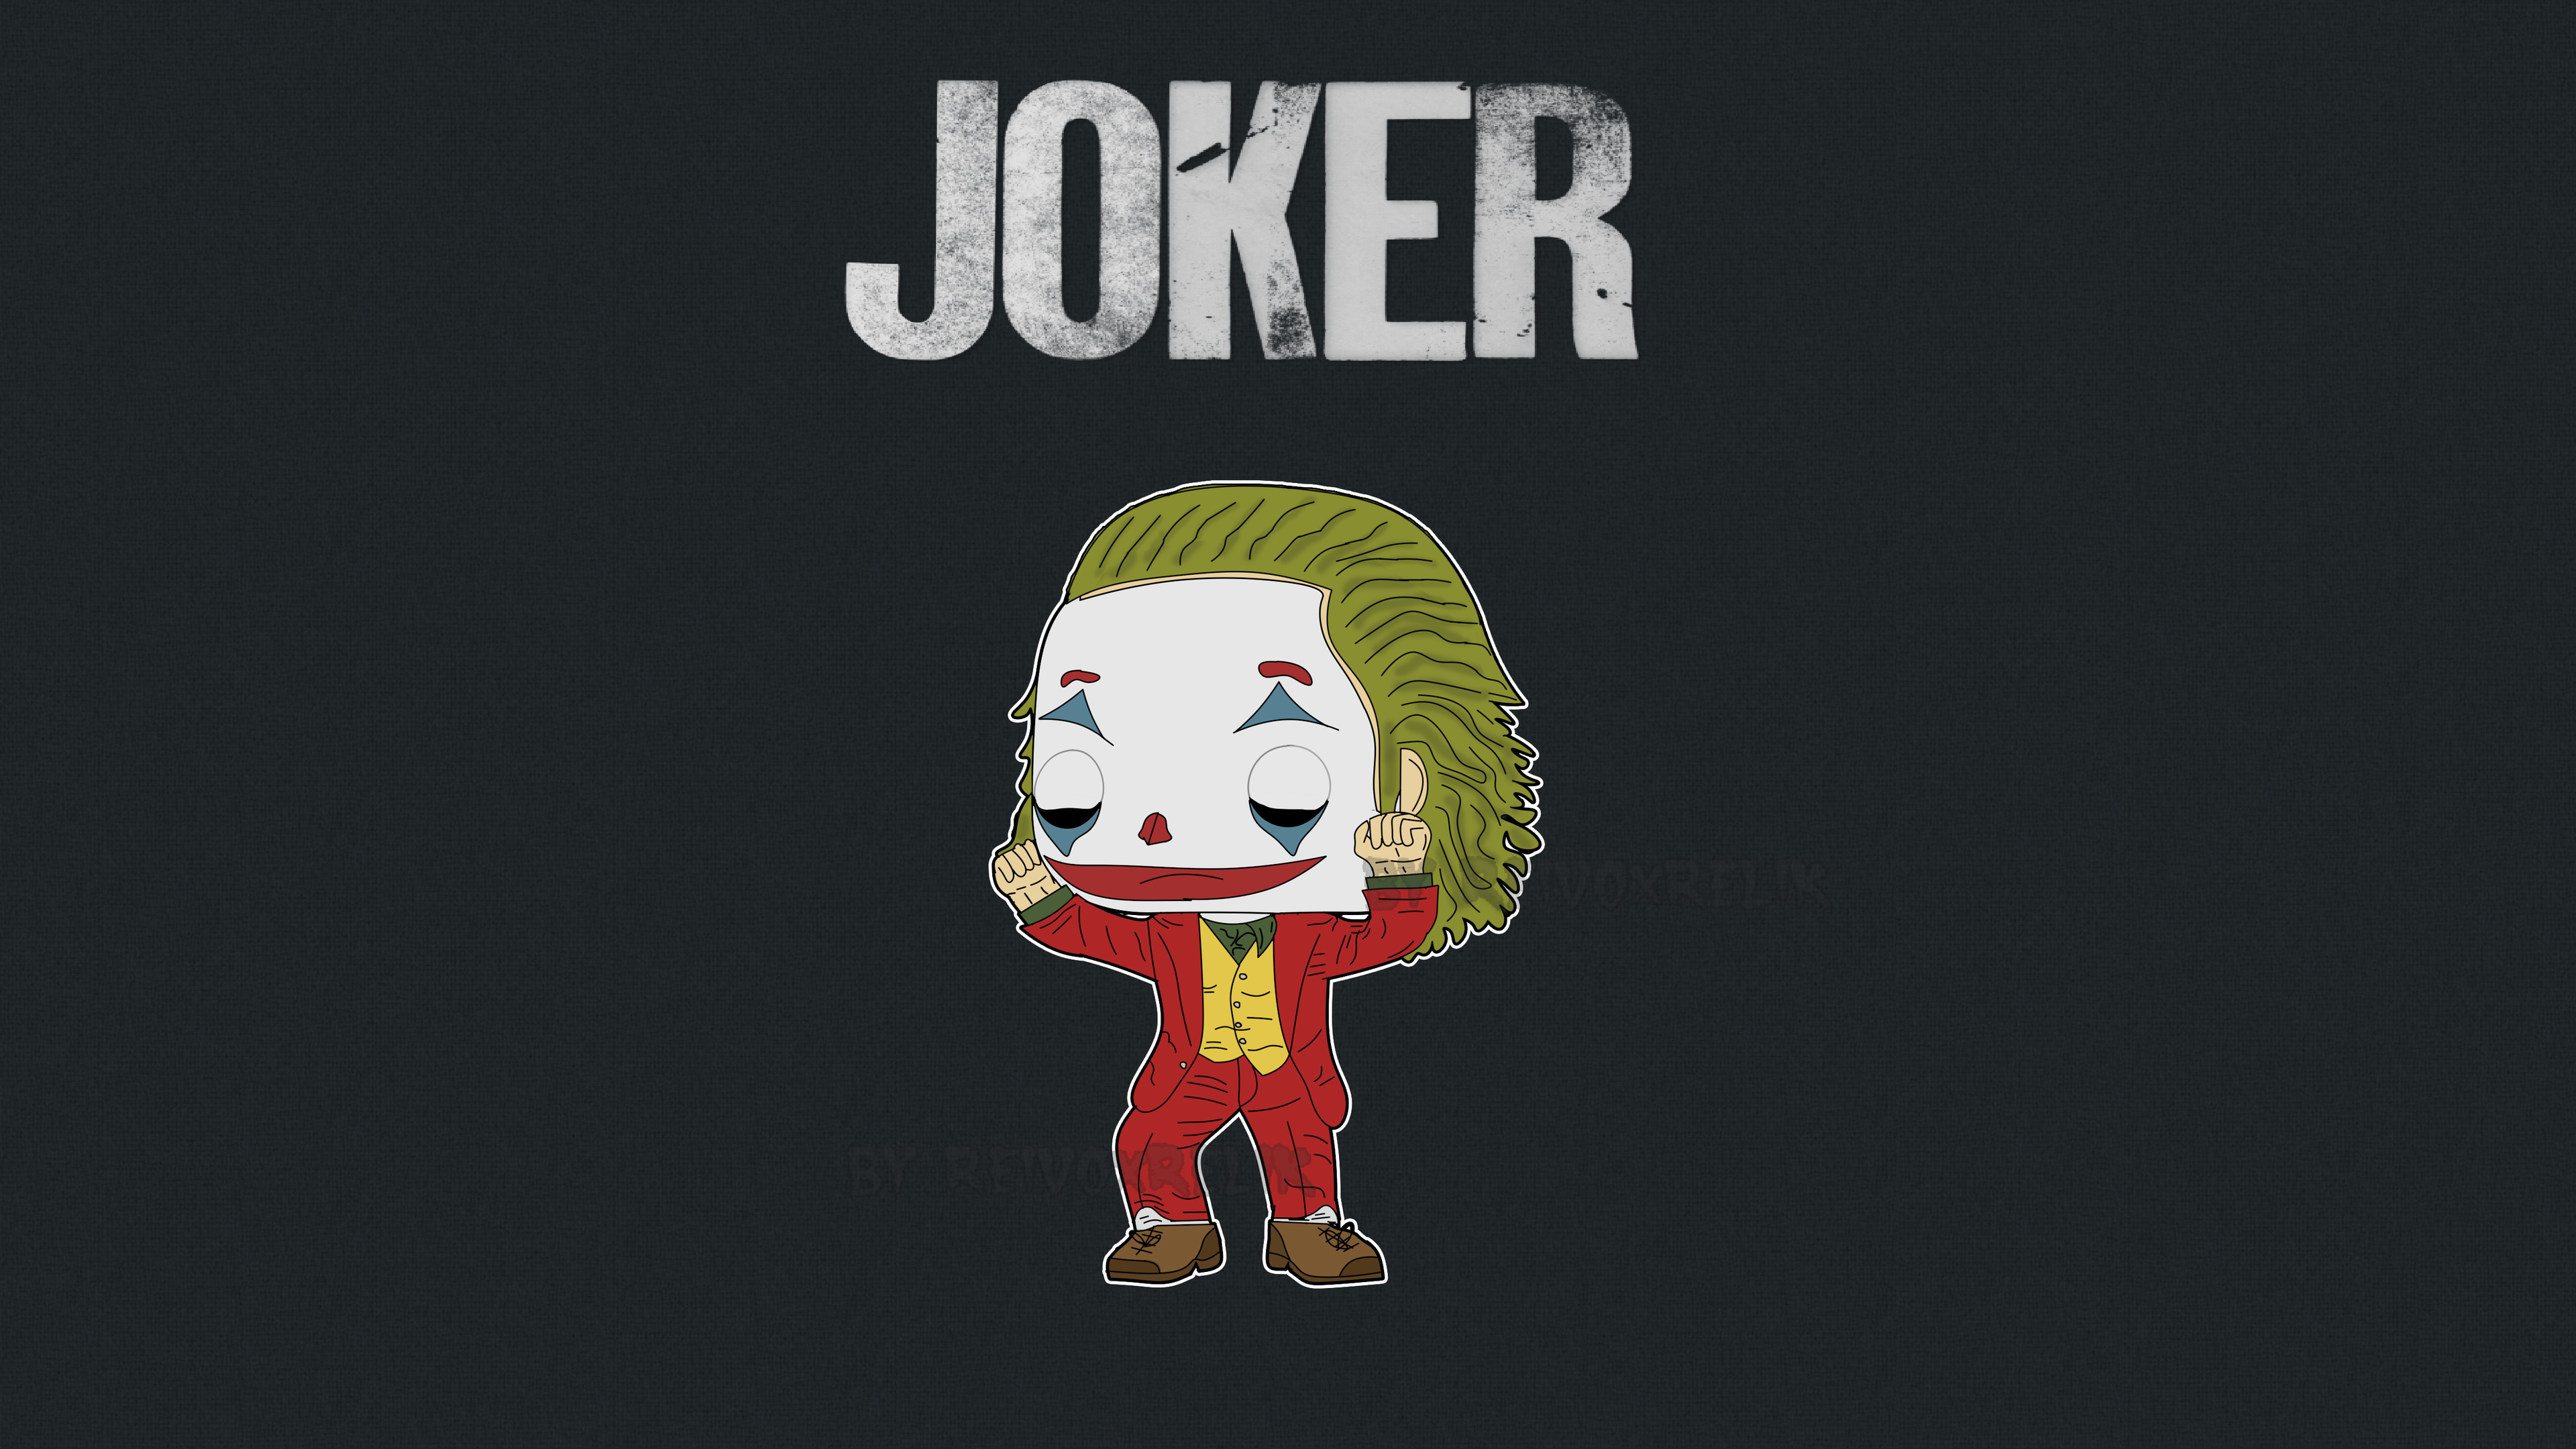 little joker minimalist 1572368478 - Little Joker Minimalist - supervillain wallpapers, superheroes wallpapers, joker wallpapers, hd-wallpapers, 5k wallpapers, 4k-wallpapers